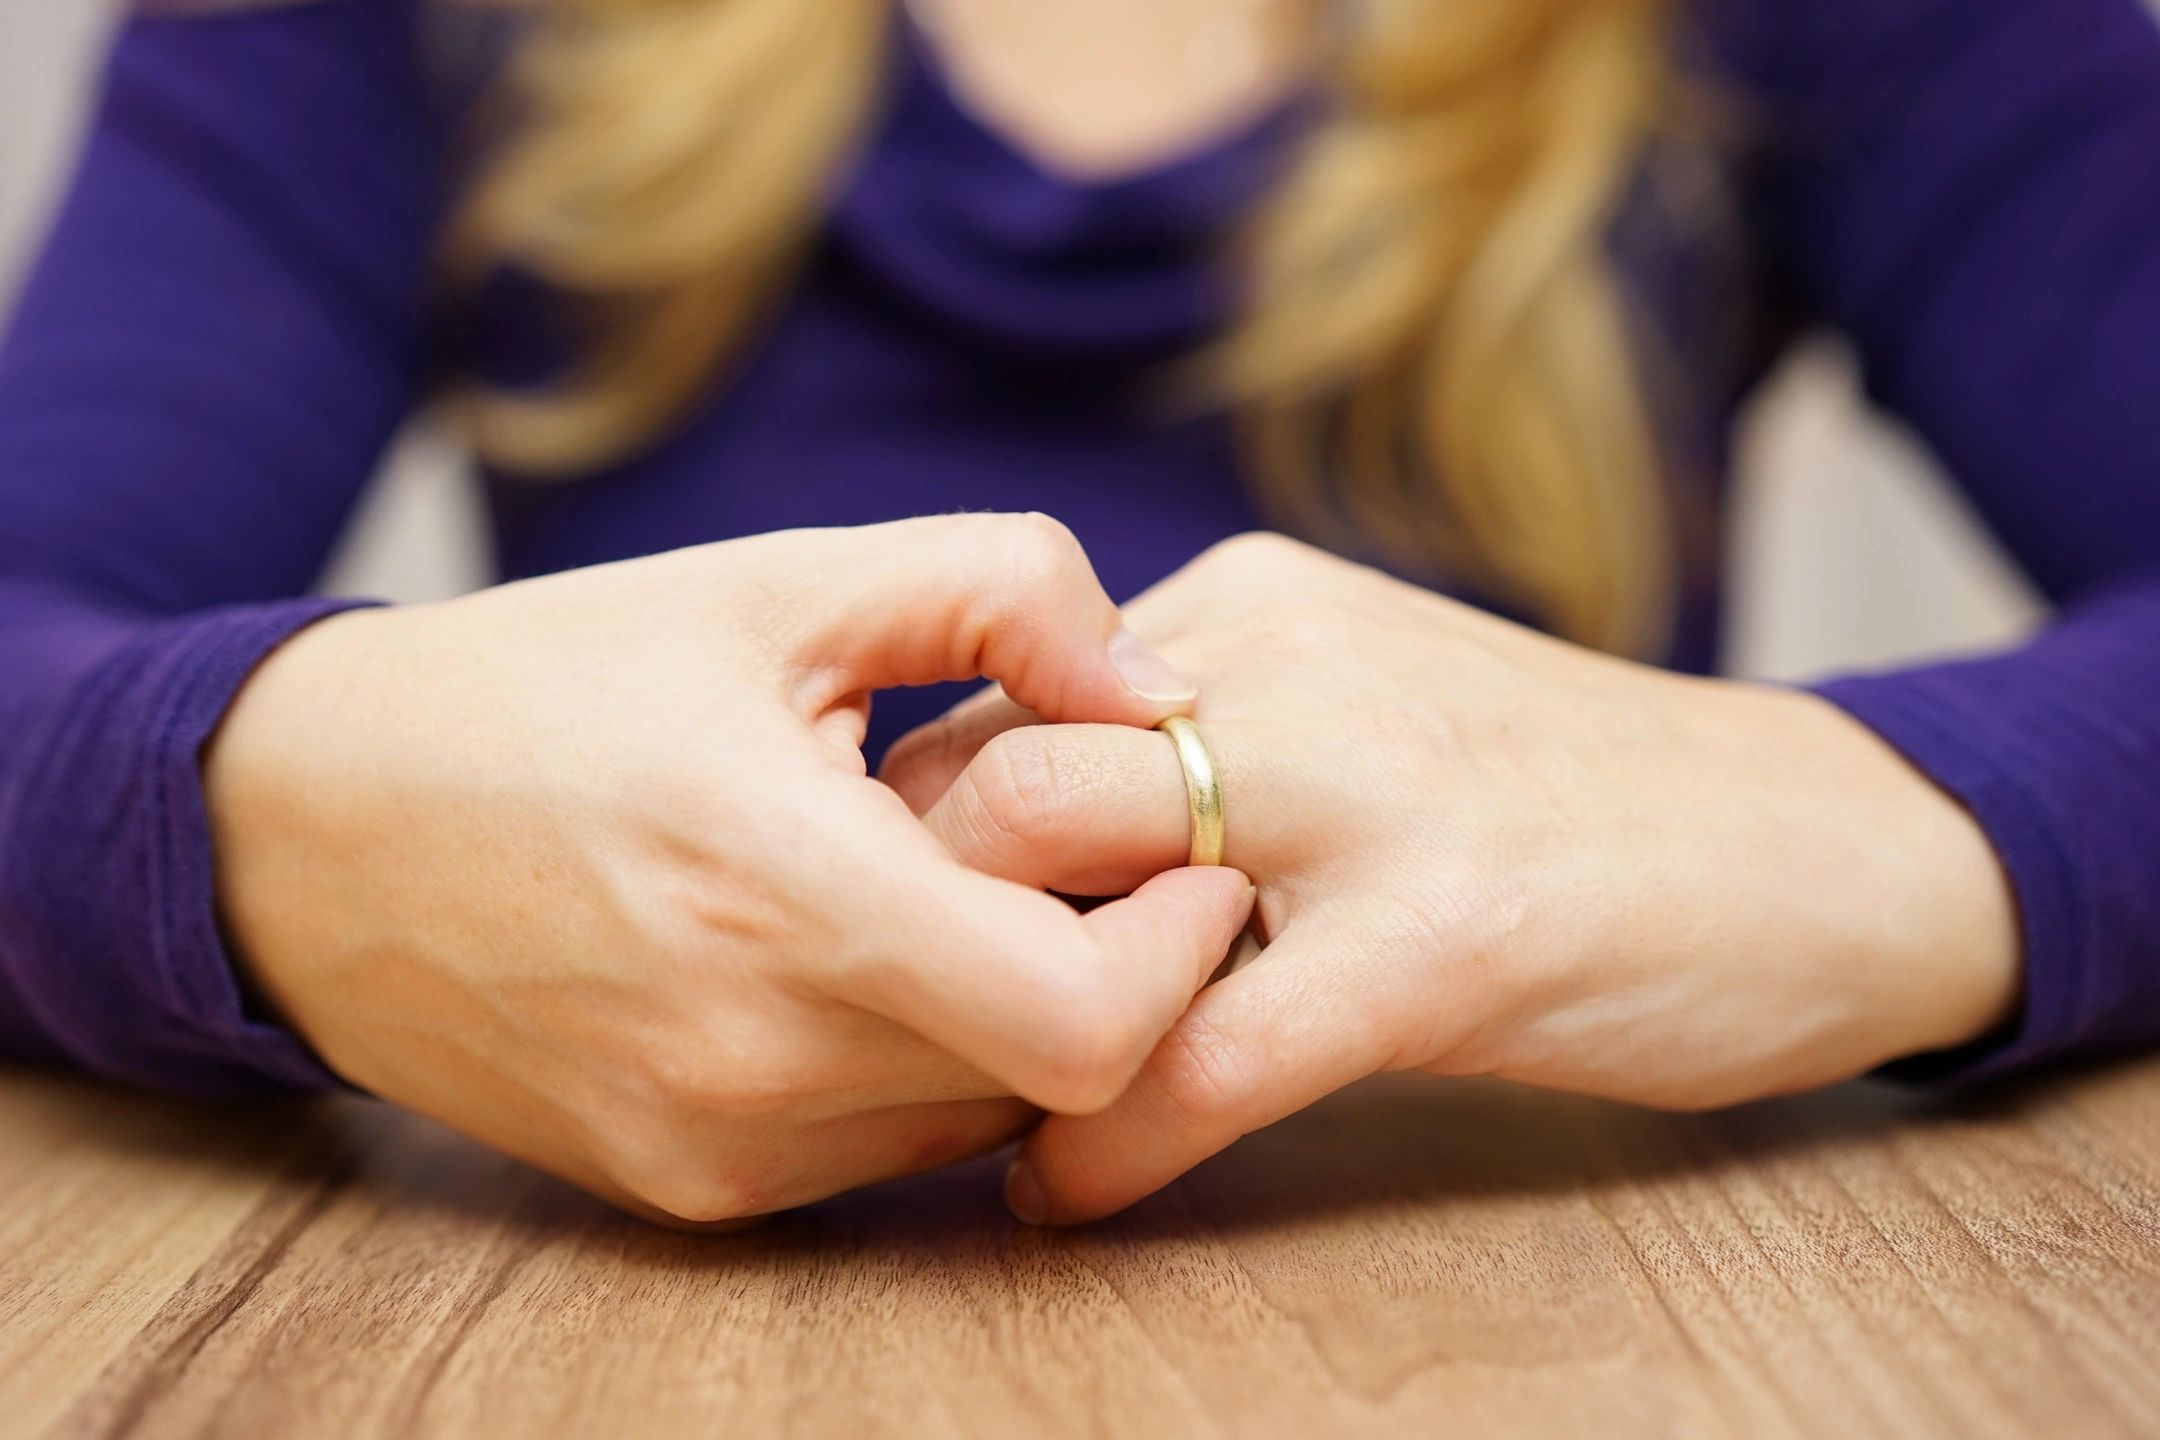 Signs That It May Be Time for a Divorce